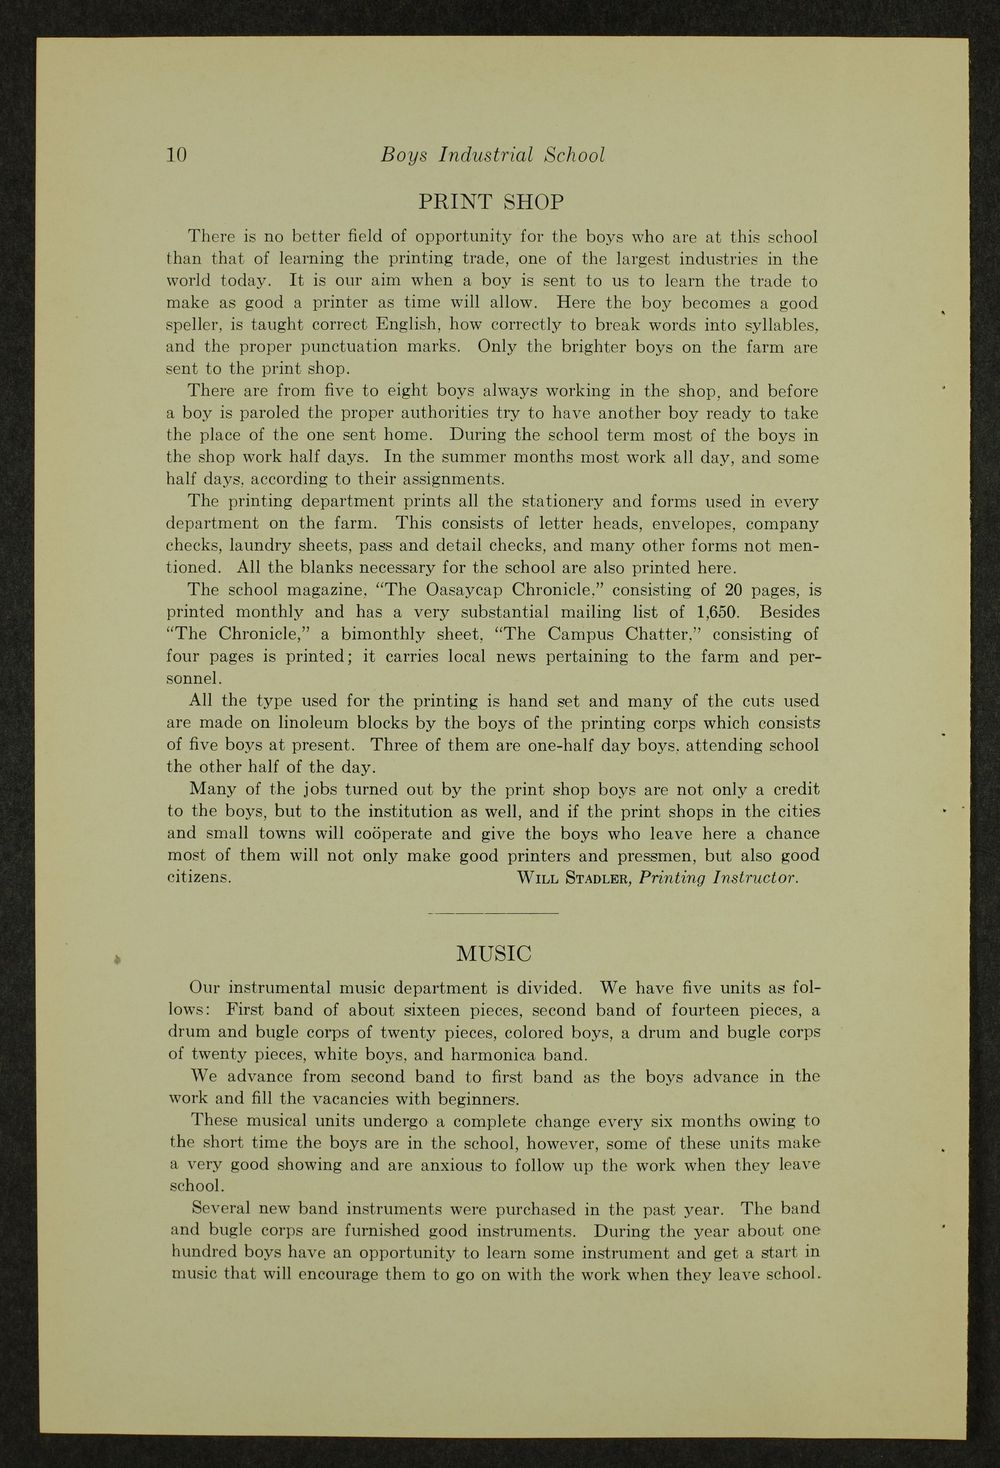 Biennial report of the Boys Industrial School, 1940 - 10